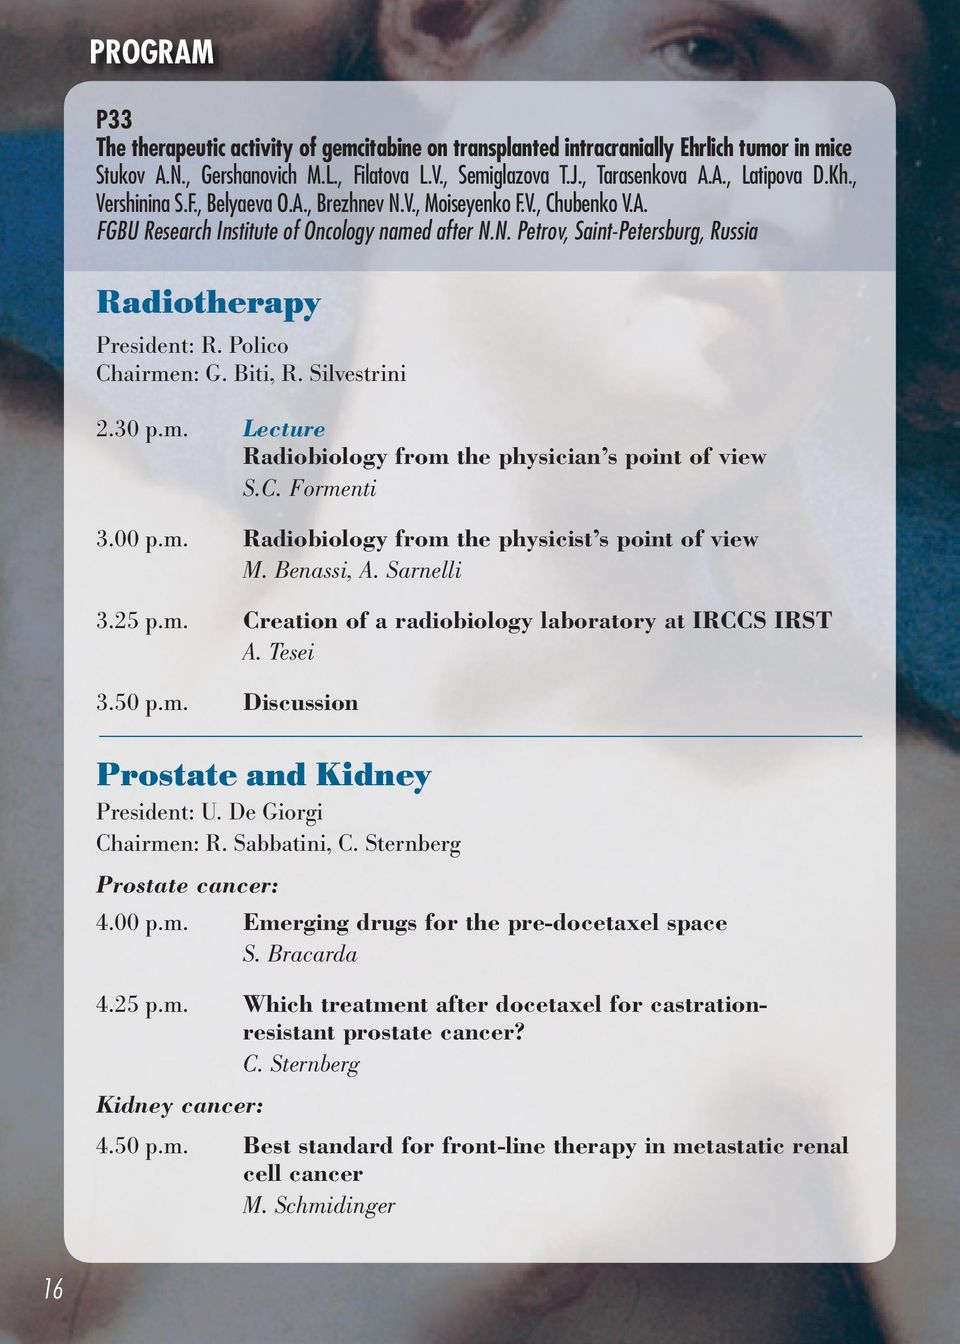 Polico Chairmen: G. Biti, R. Silvestrini 2.30 p.m. Lecture Radiobiology from the physician s point of view S.C. Formenti 3.00 p.m. Radiobiology from the physicist s point of view M. Benassi, A.